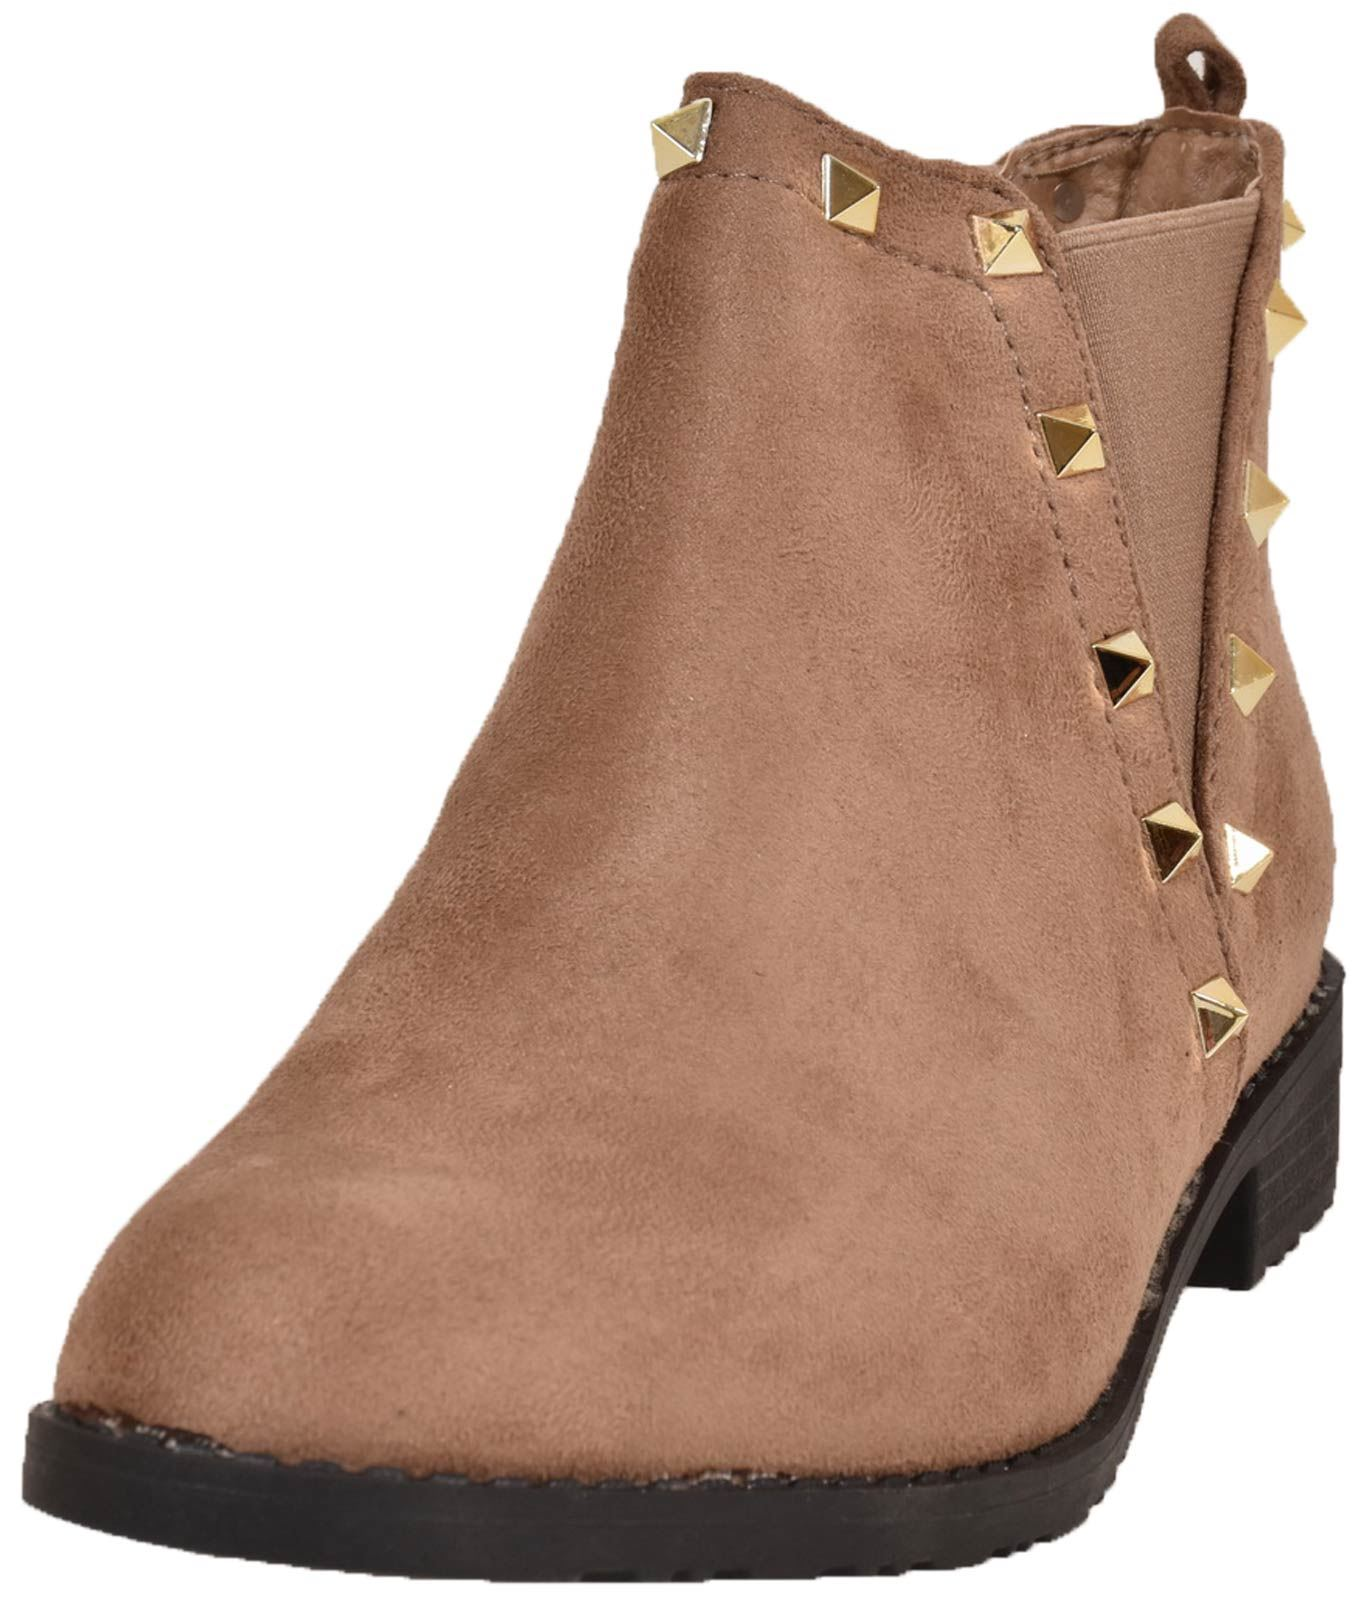 New-Women-Chelsea-Ankle-Boots-Winter-Block-Heel-Ladies-Biker-Style-Boots thumbnail 59